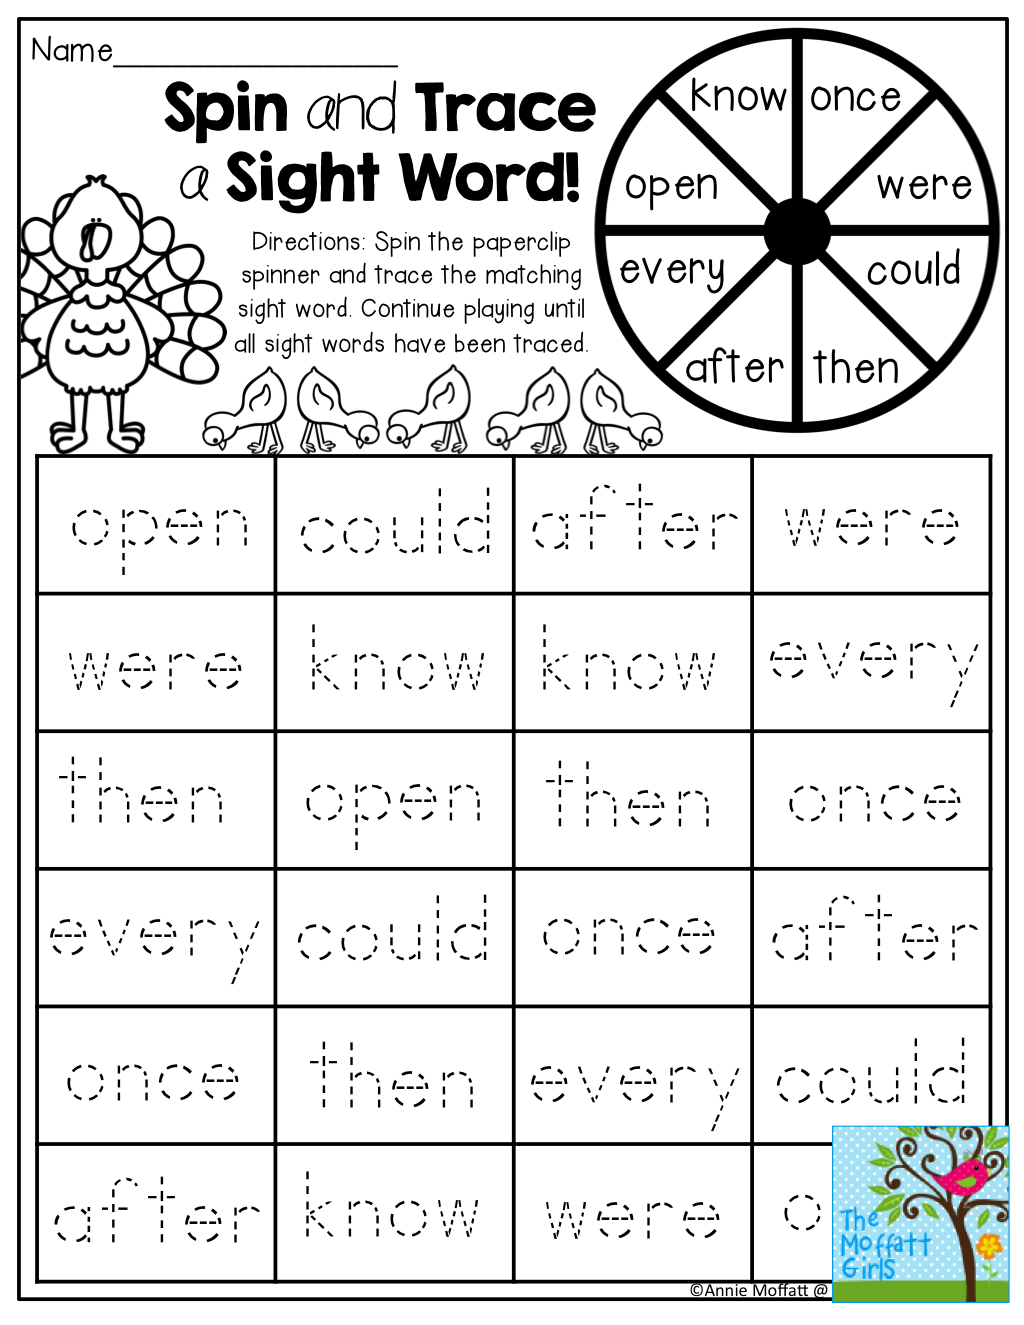 Spin And Trace A Sight Word Tons Of Fun And Interactive Printables Teaching Sight Words Word Activities English Vocabulary Words [ 1325 x 1024 Pixel ]